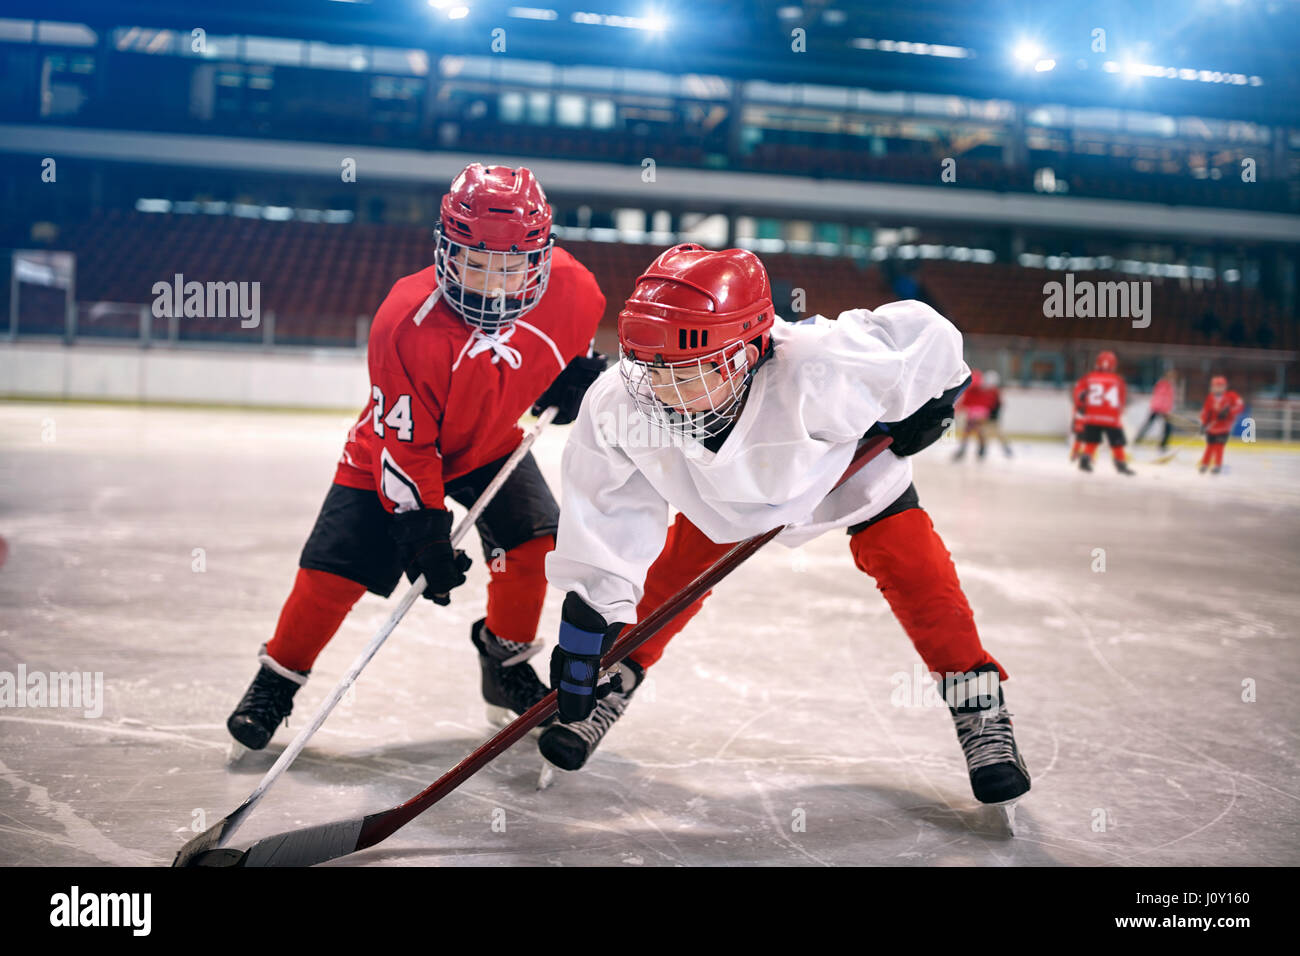 young children play ice hockey - Stock Image